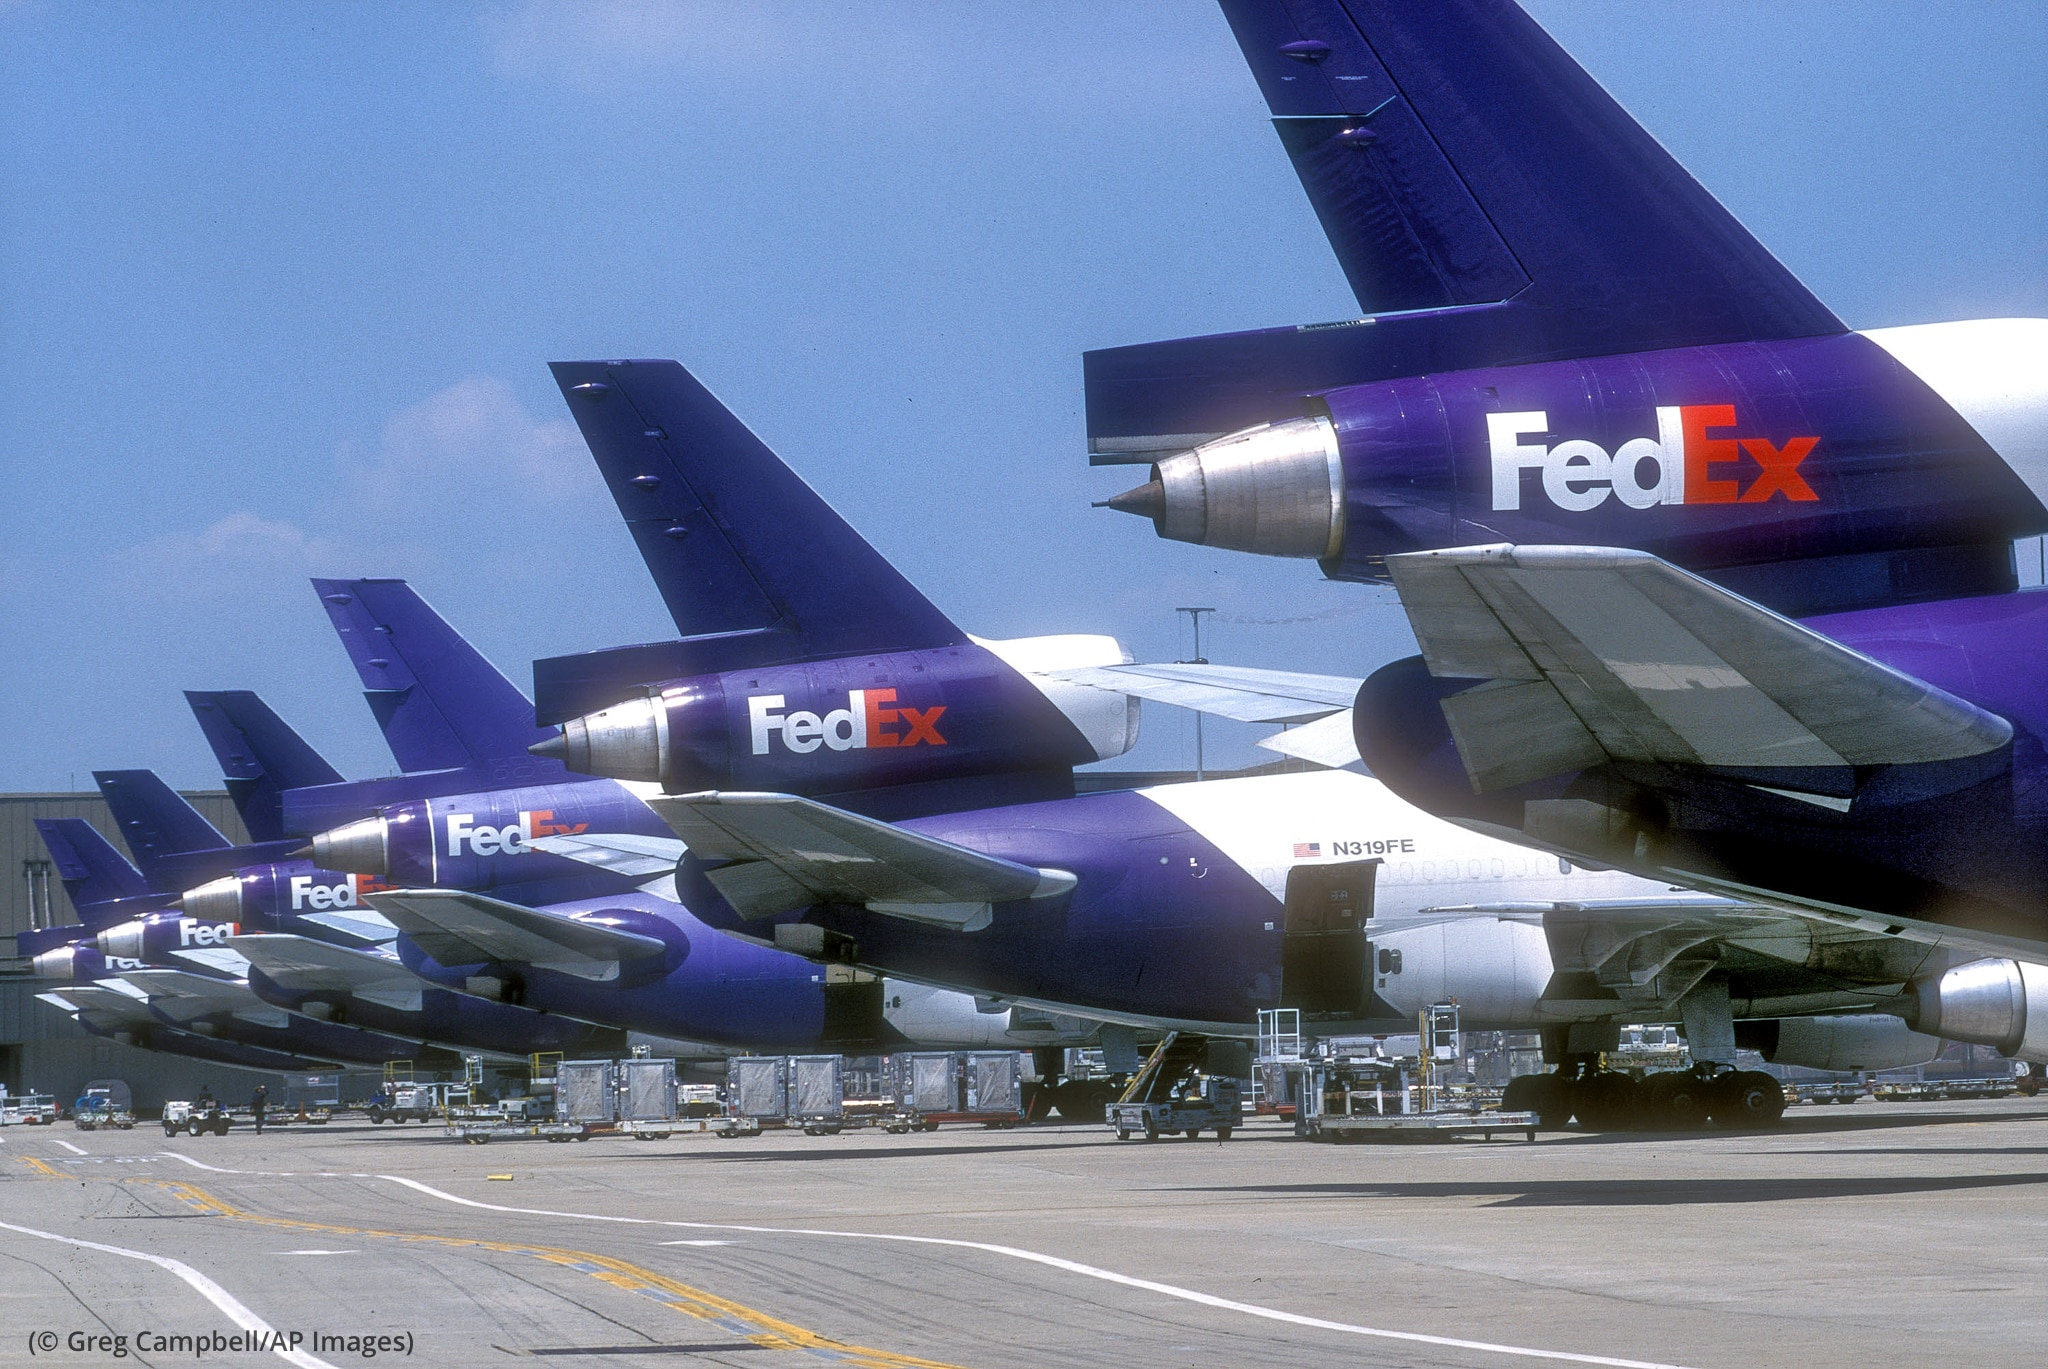 Row of aircraft with 'Fedex' painted on tail (© Greg Campbell/AP Images)